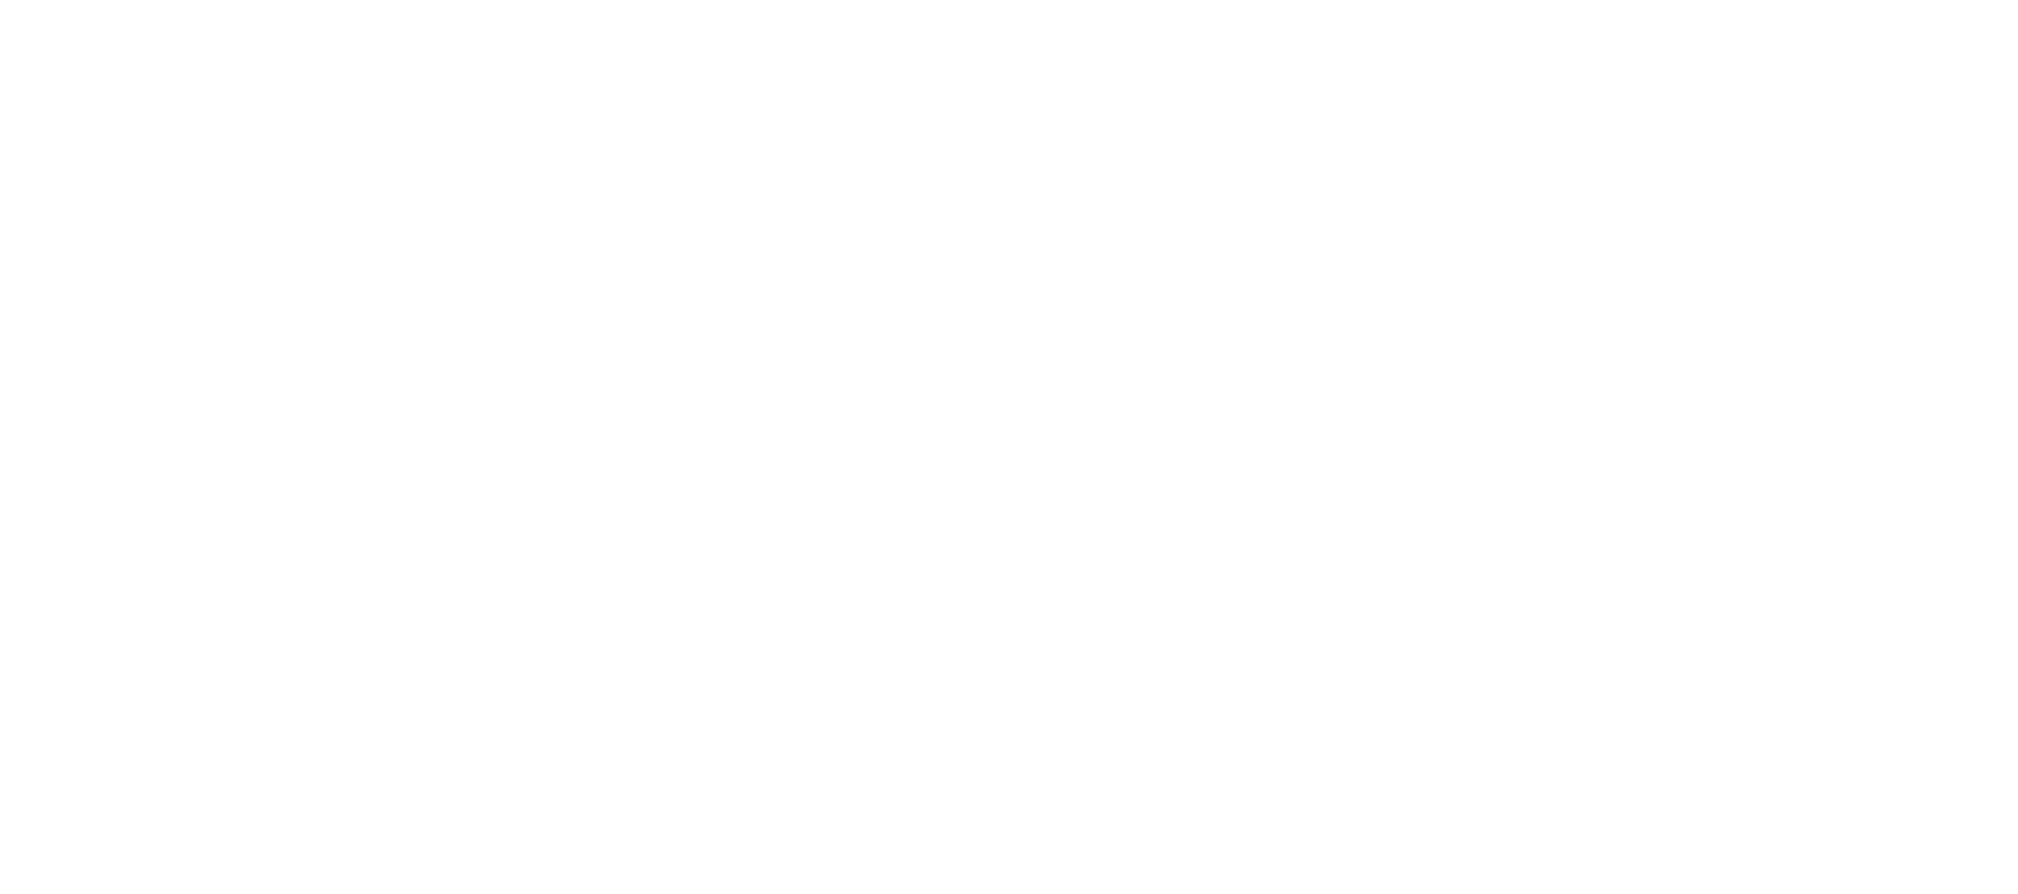 COSACAP - Music has Value